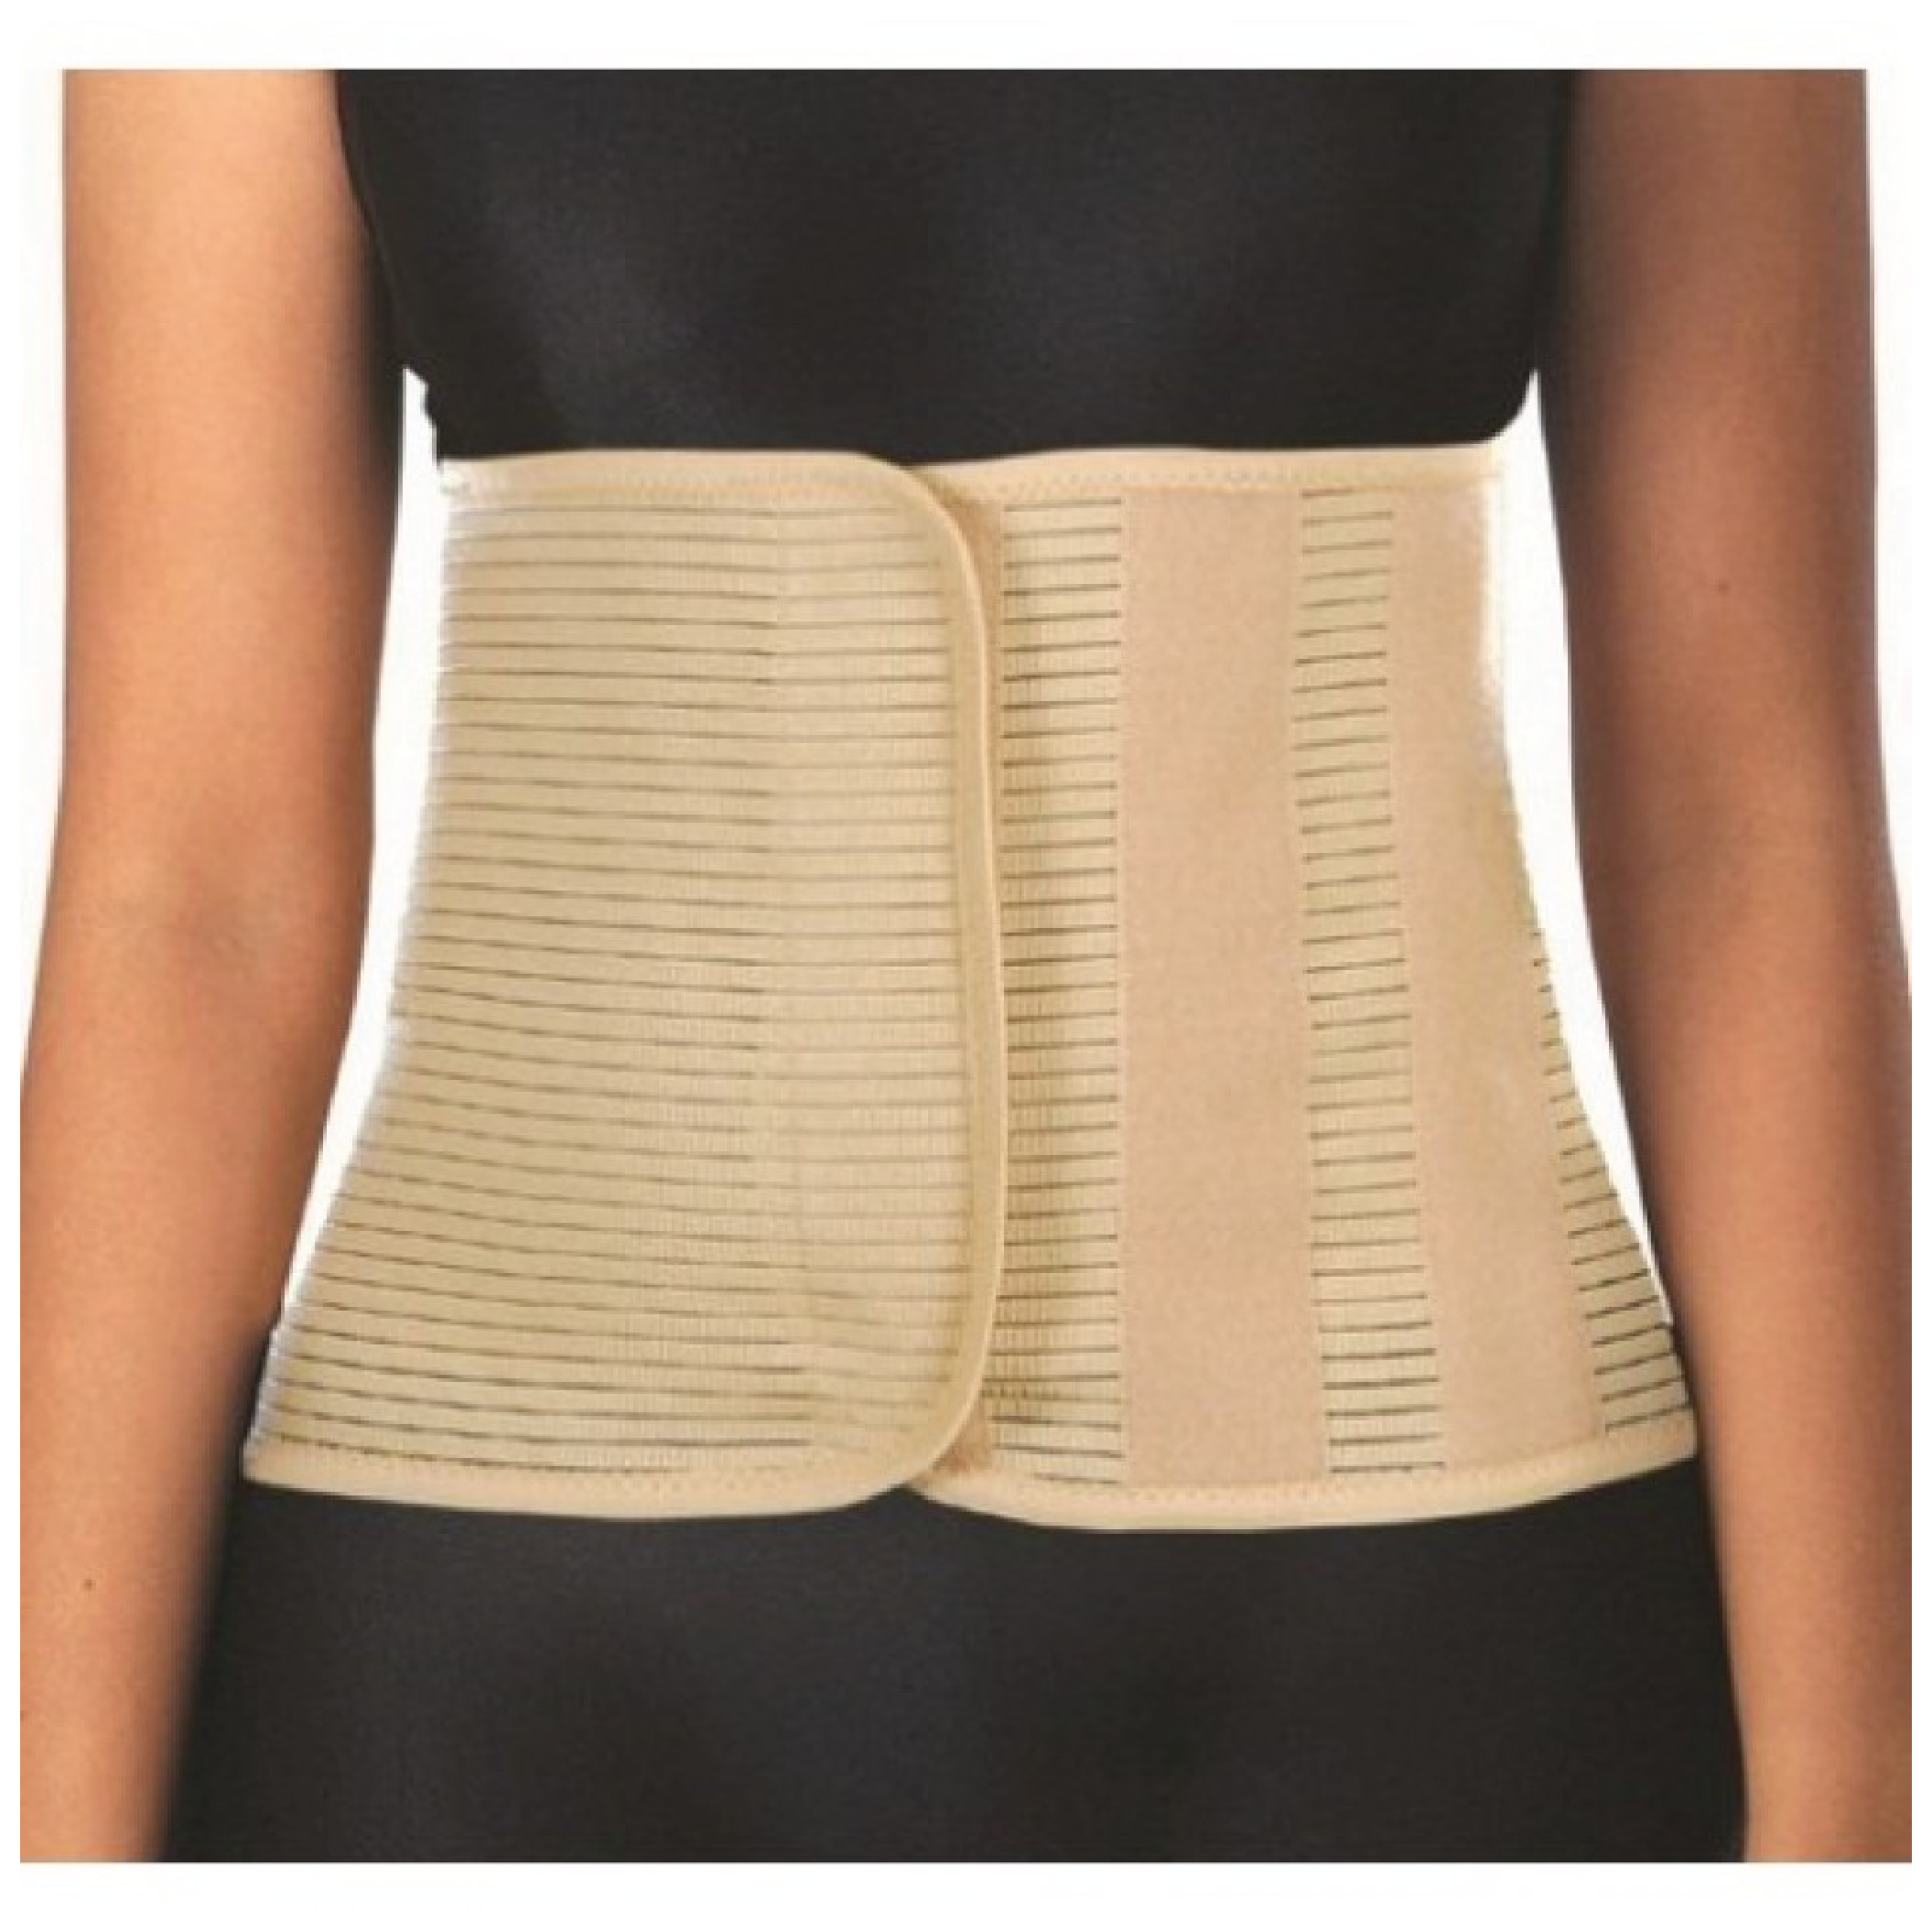 Post Maternity Corset -dealers in -Marathahalli